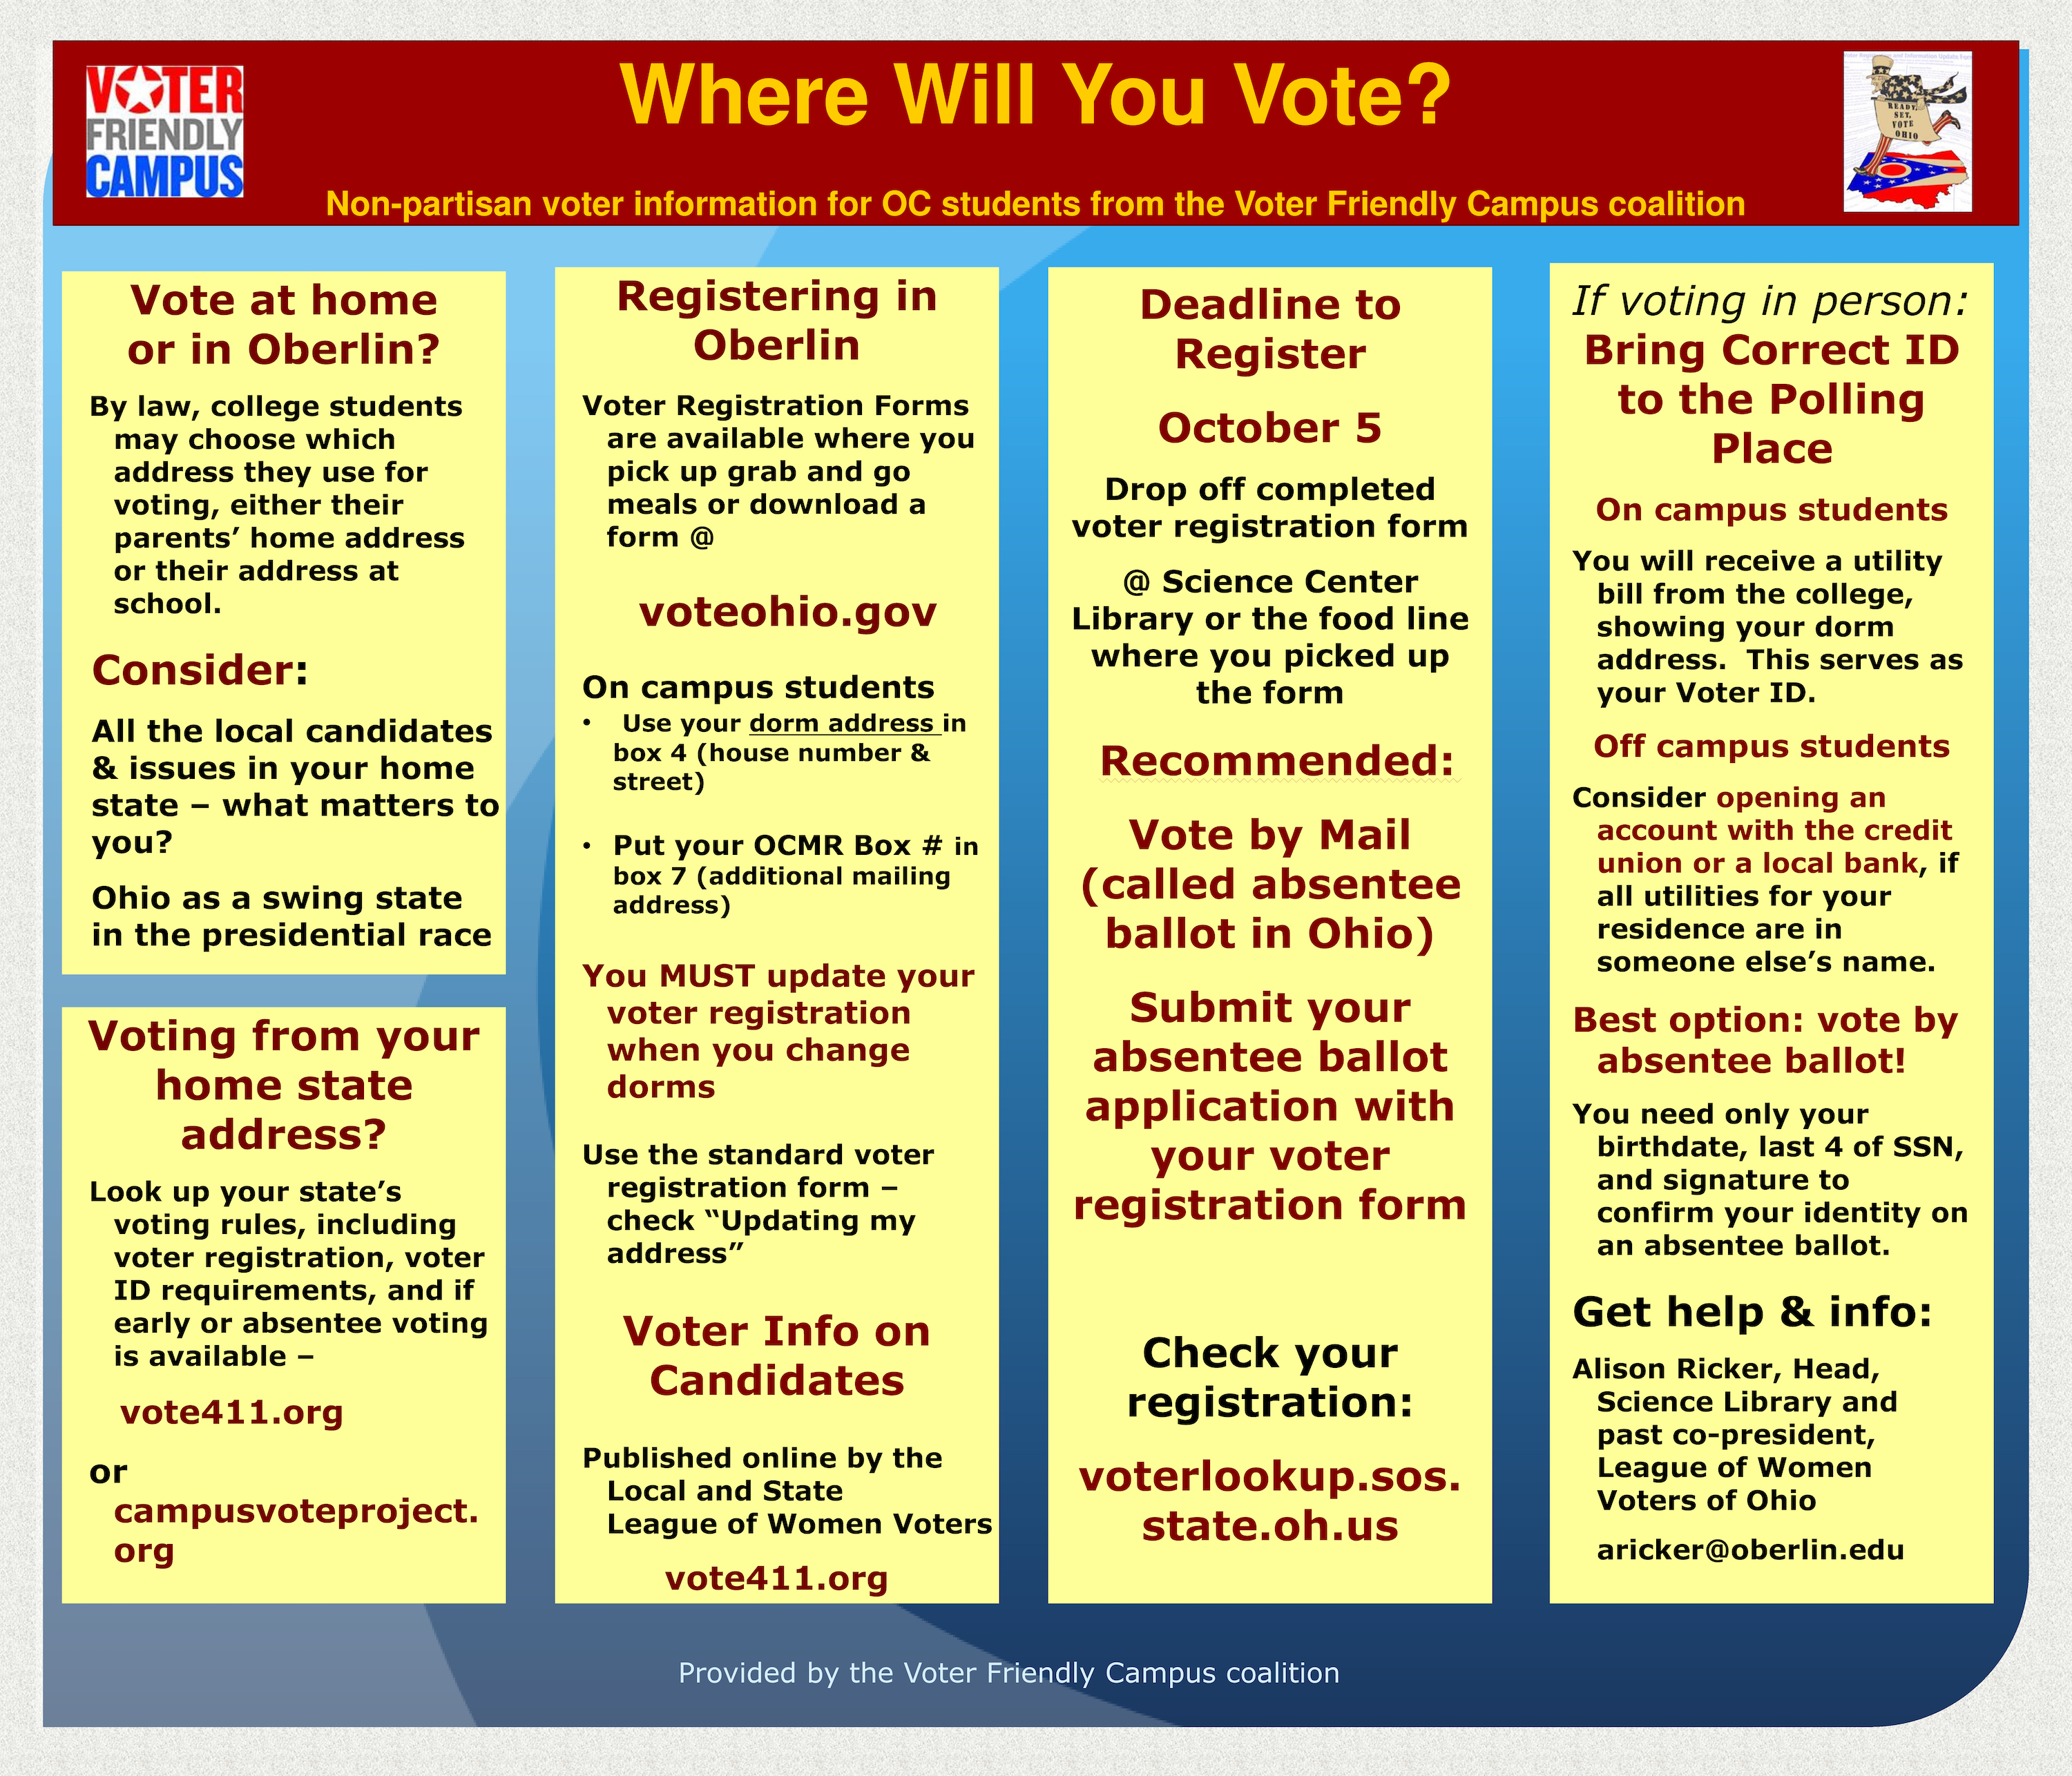 Info about how and where students can vote in Oberlin